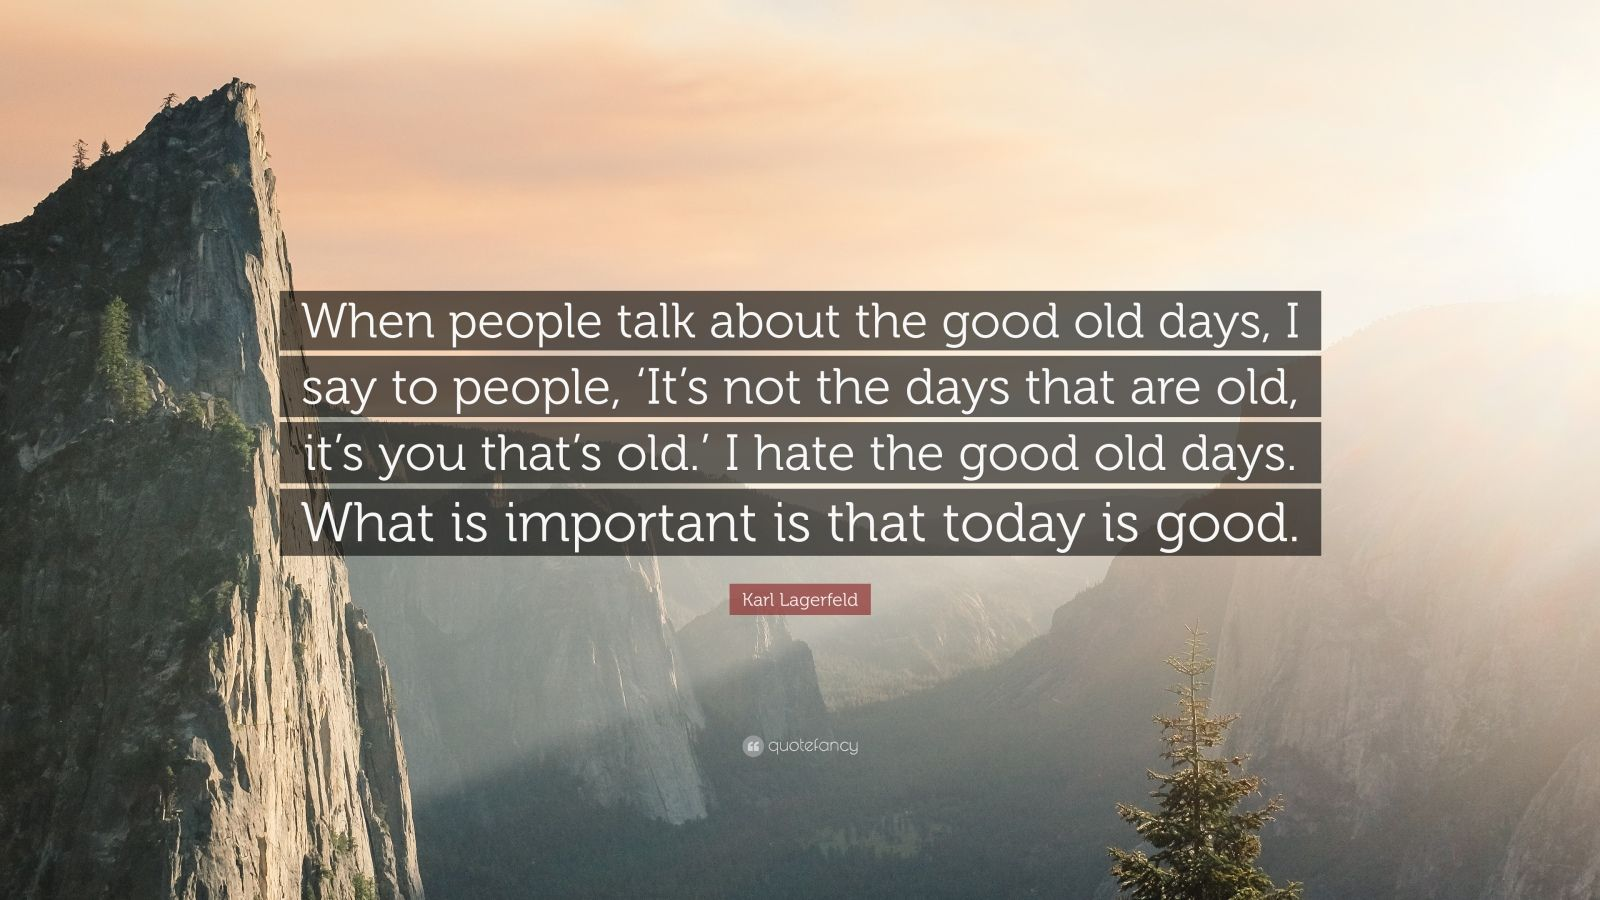 """Karl Lagerfeld Quote: """"When people talk about the good old days, I say to people, 'It's not the days that are old, it's you that's old.' I hate the good old days. What is important is that today is good."""""""